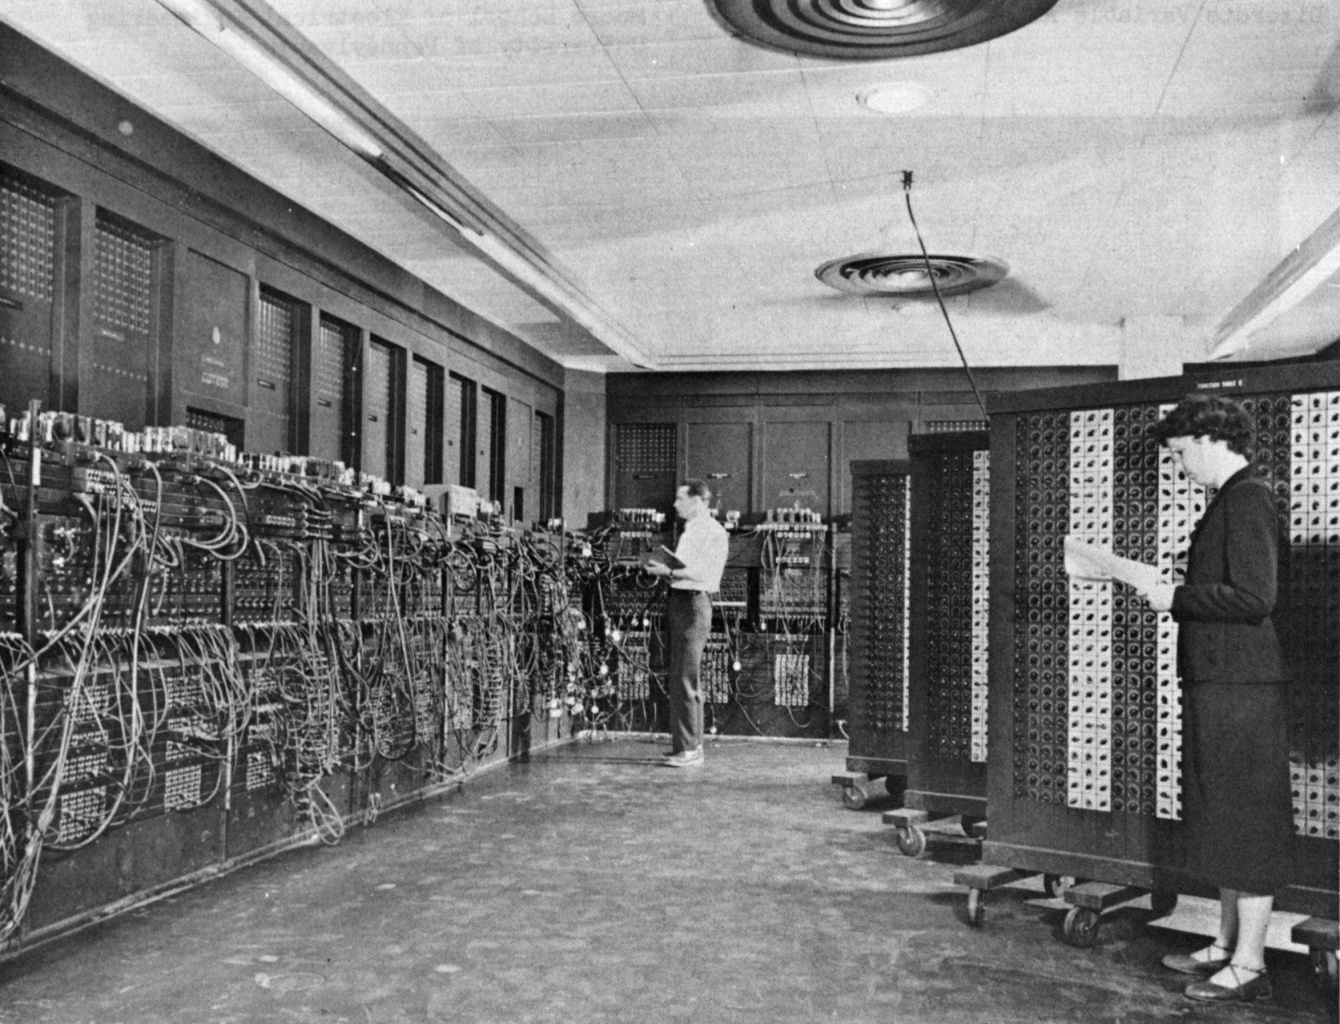 Glen Beck (background) and Betty Snyder (foreground) program ENIAC in BRL building 328. (U.S. Army photo)